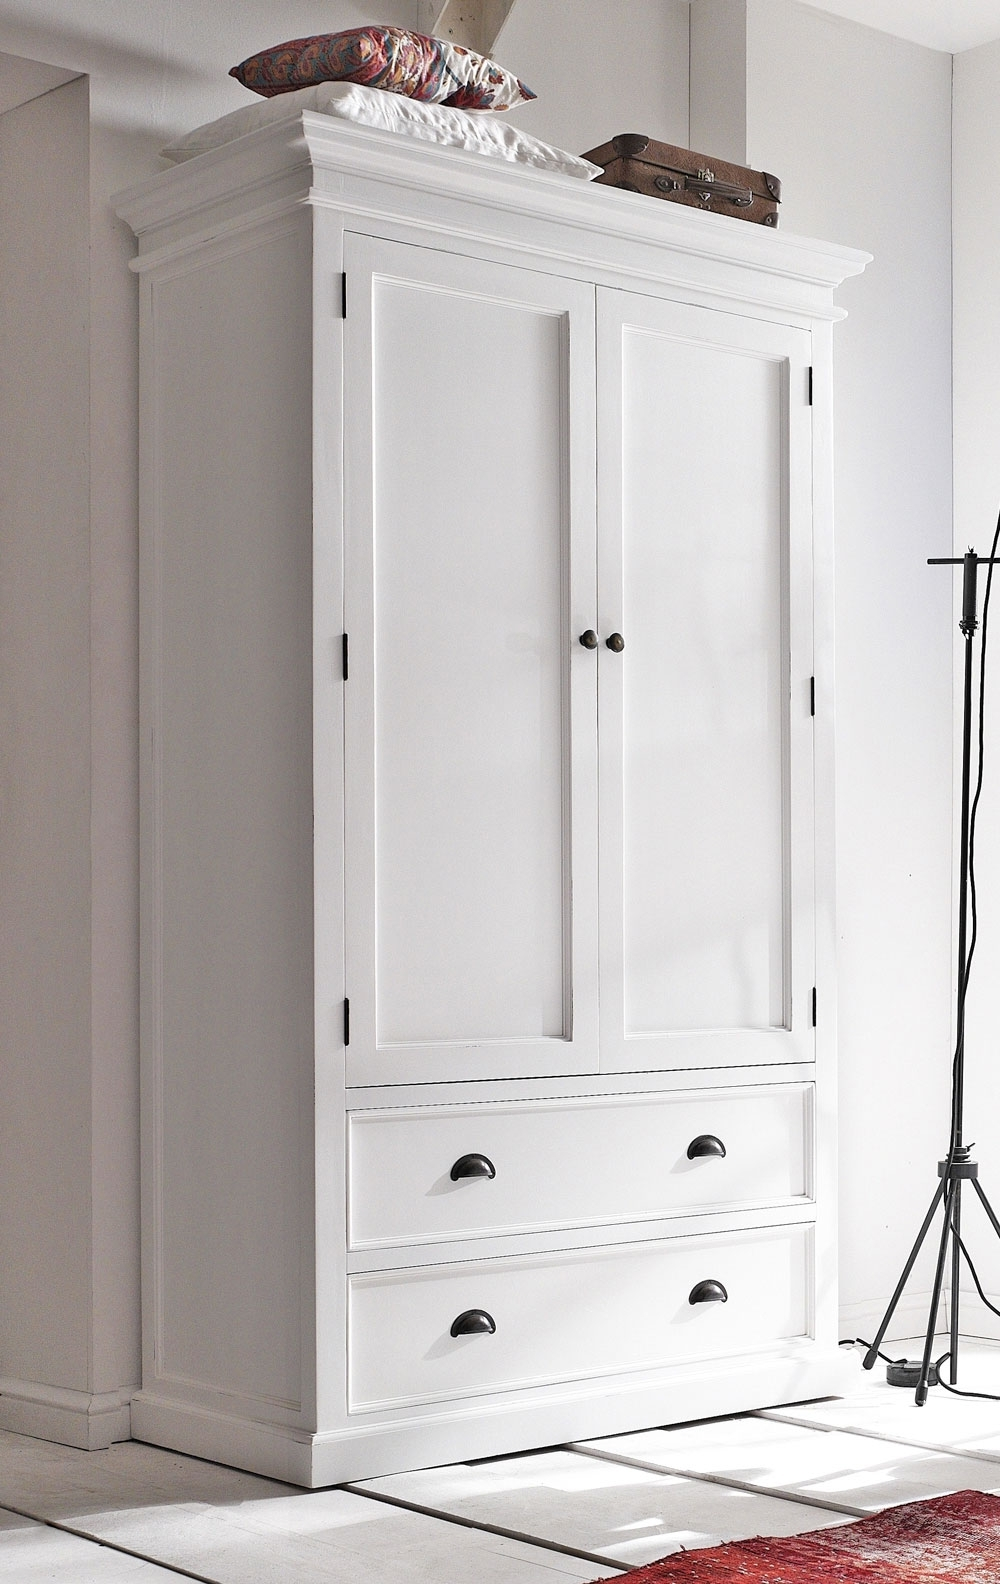 2017 White Antique Wardrobes Pertaining To 13 Vintage Closet Sets For Your Secret Fashionable Sanctuary (View 1 of 15)